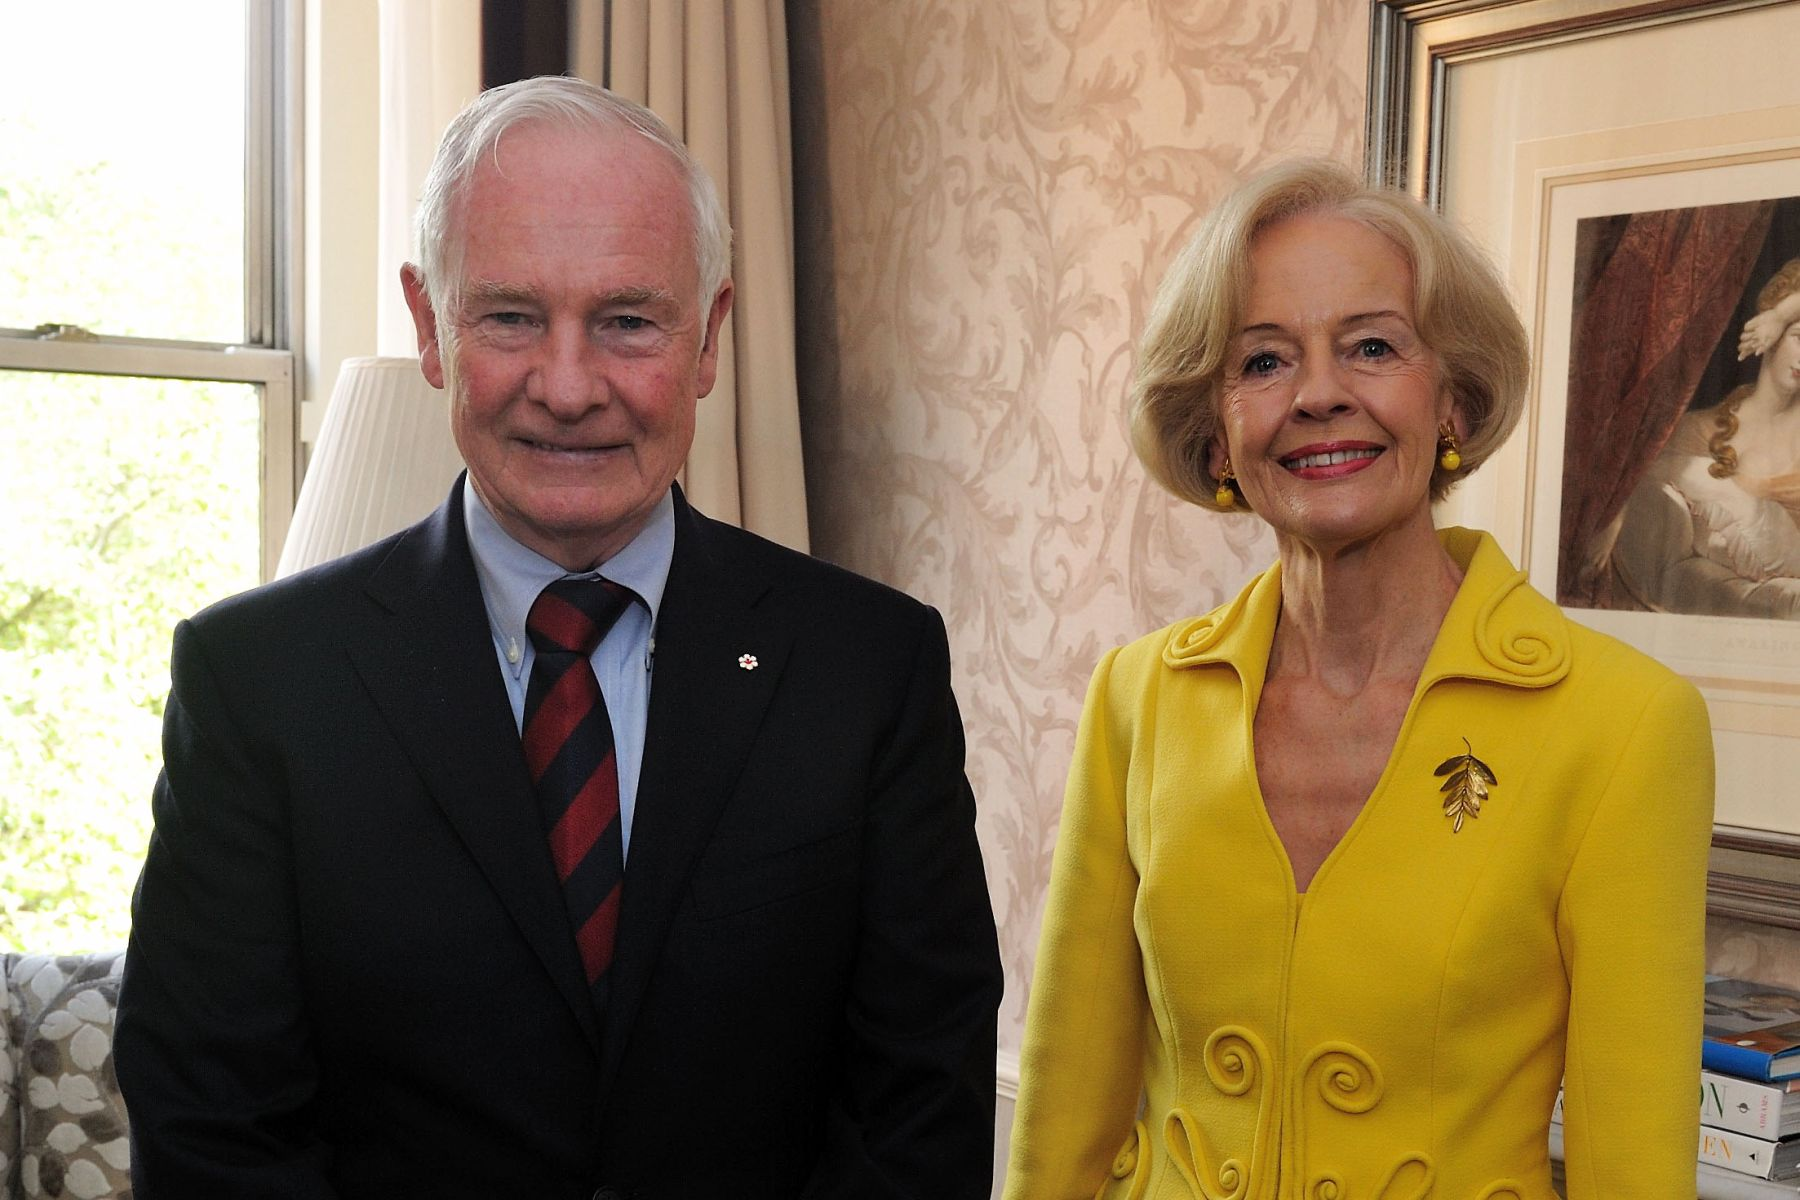 The morning of the last day of his visit to London to celebrate the Diamond Jubilee, the Governor General met with Her Excellency Ms. Quentin Bryce, A.C., C.V.O., Governor-General of the Commonwealth of Australia. They discussed areas of common interest and their role as representative of Her Majesty The Queen in their respective country.